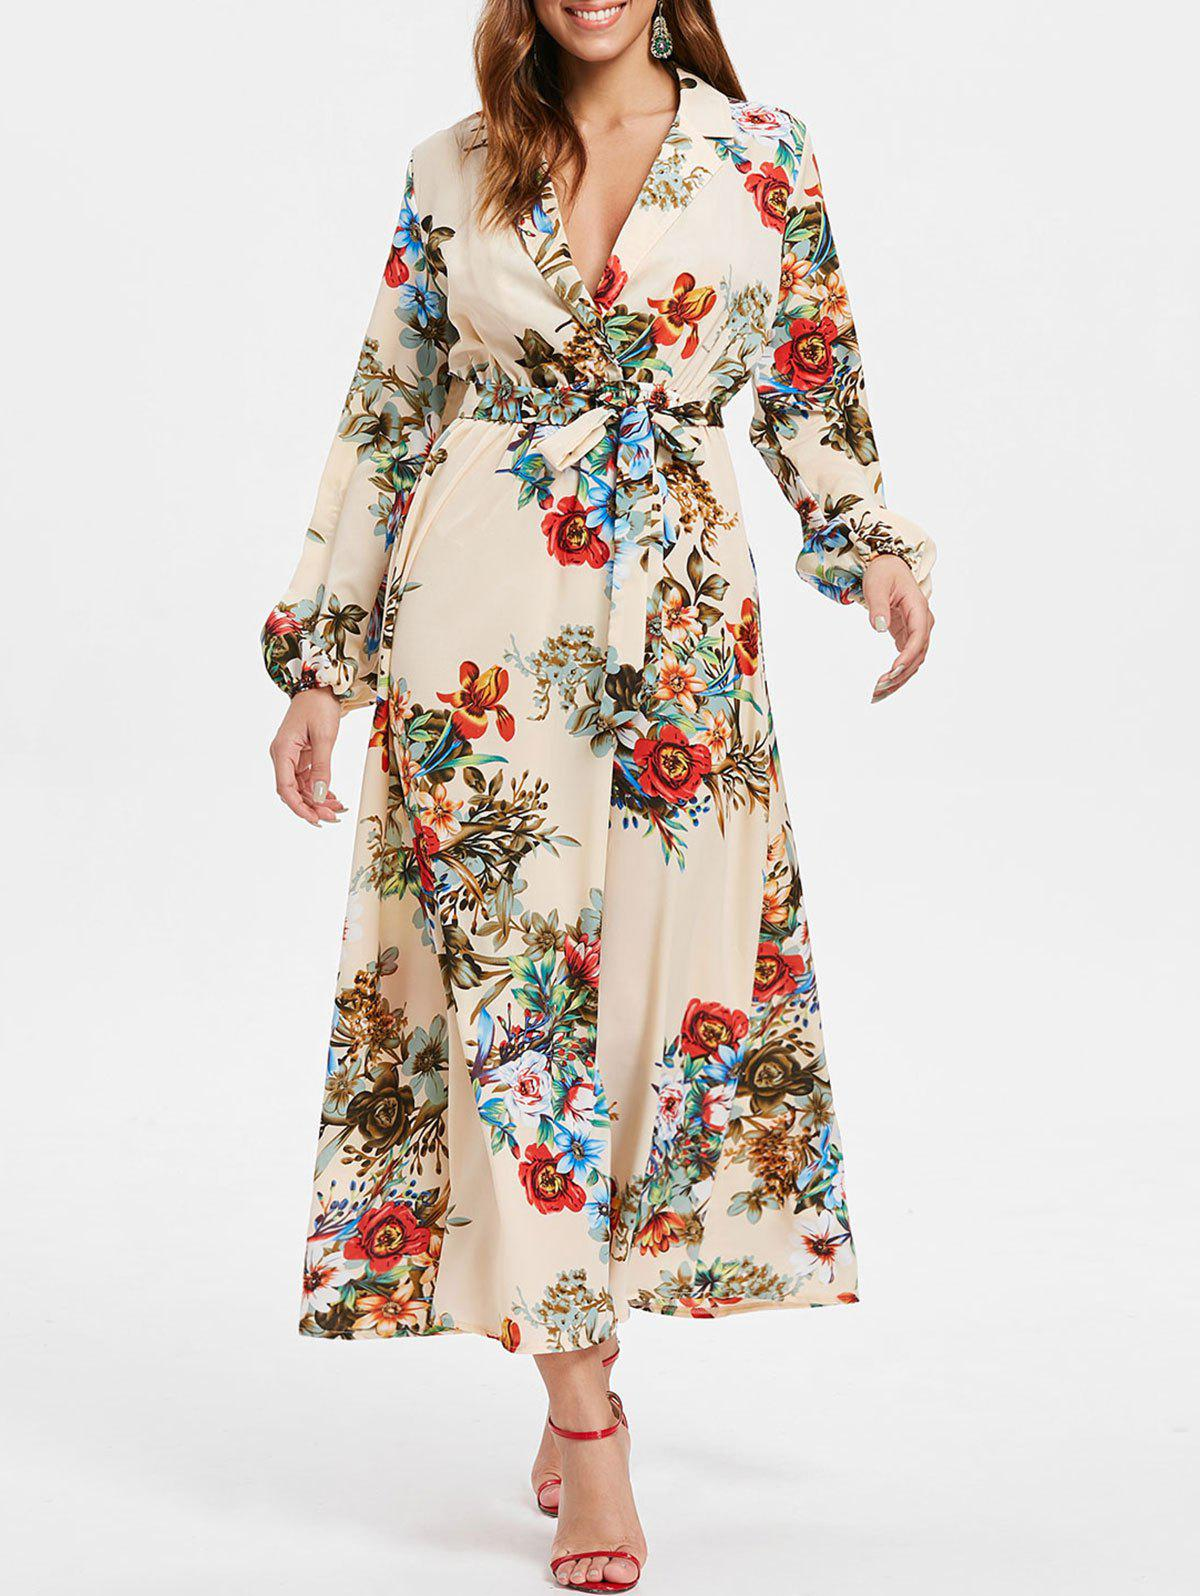 Hot Long Sleeve Lapel Collar Maxi Floral Dress